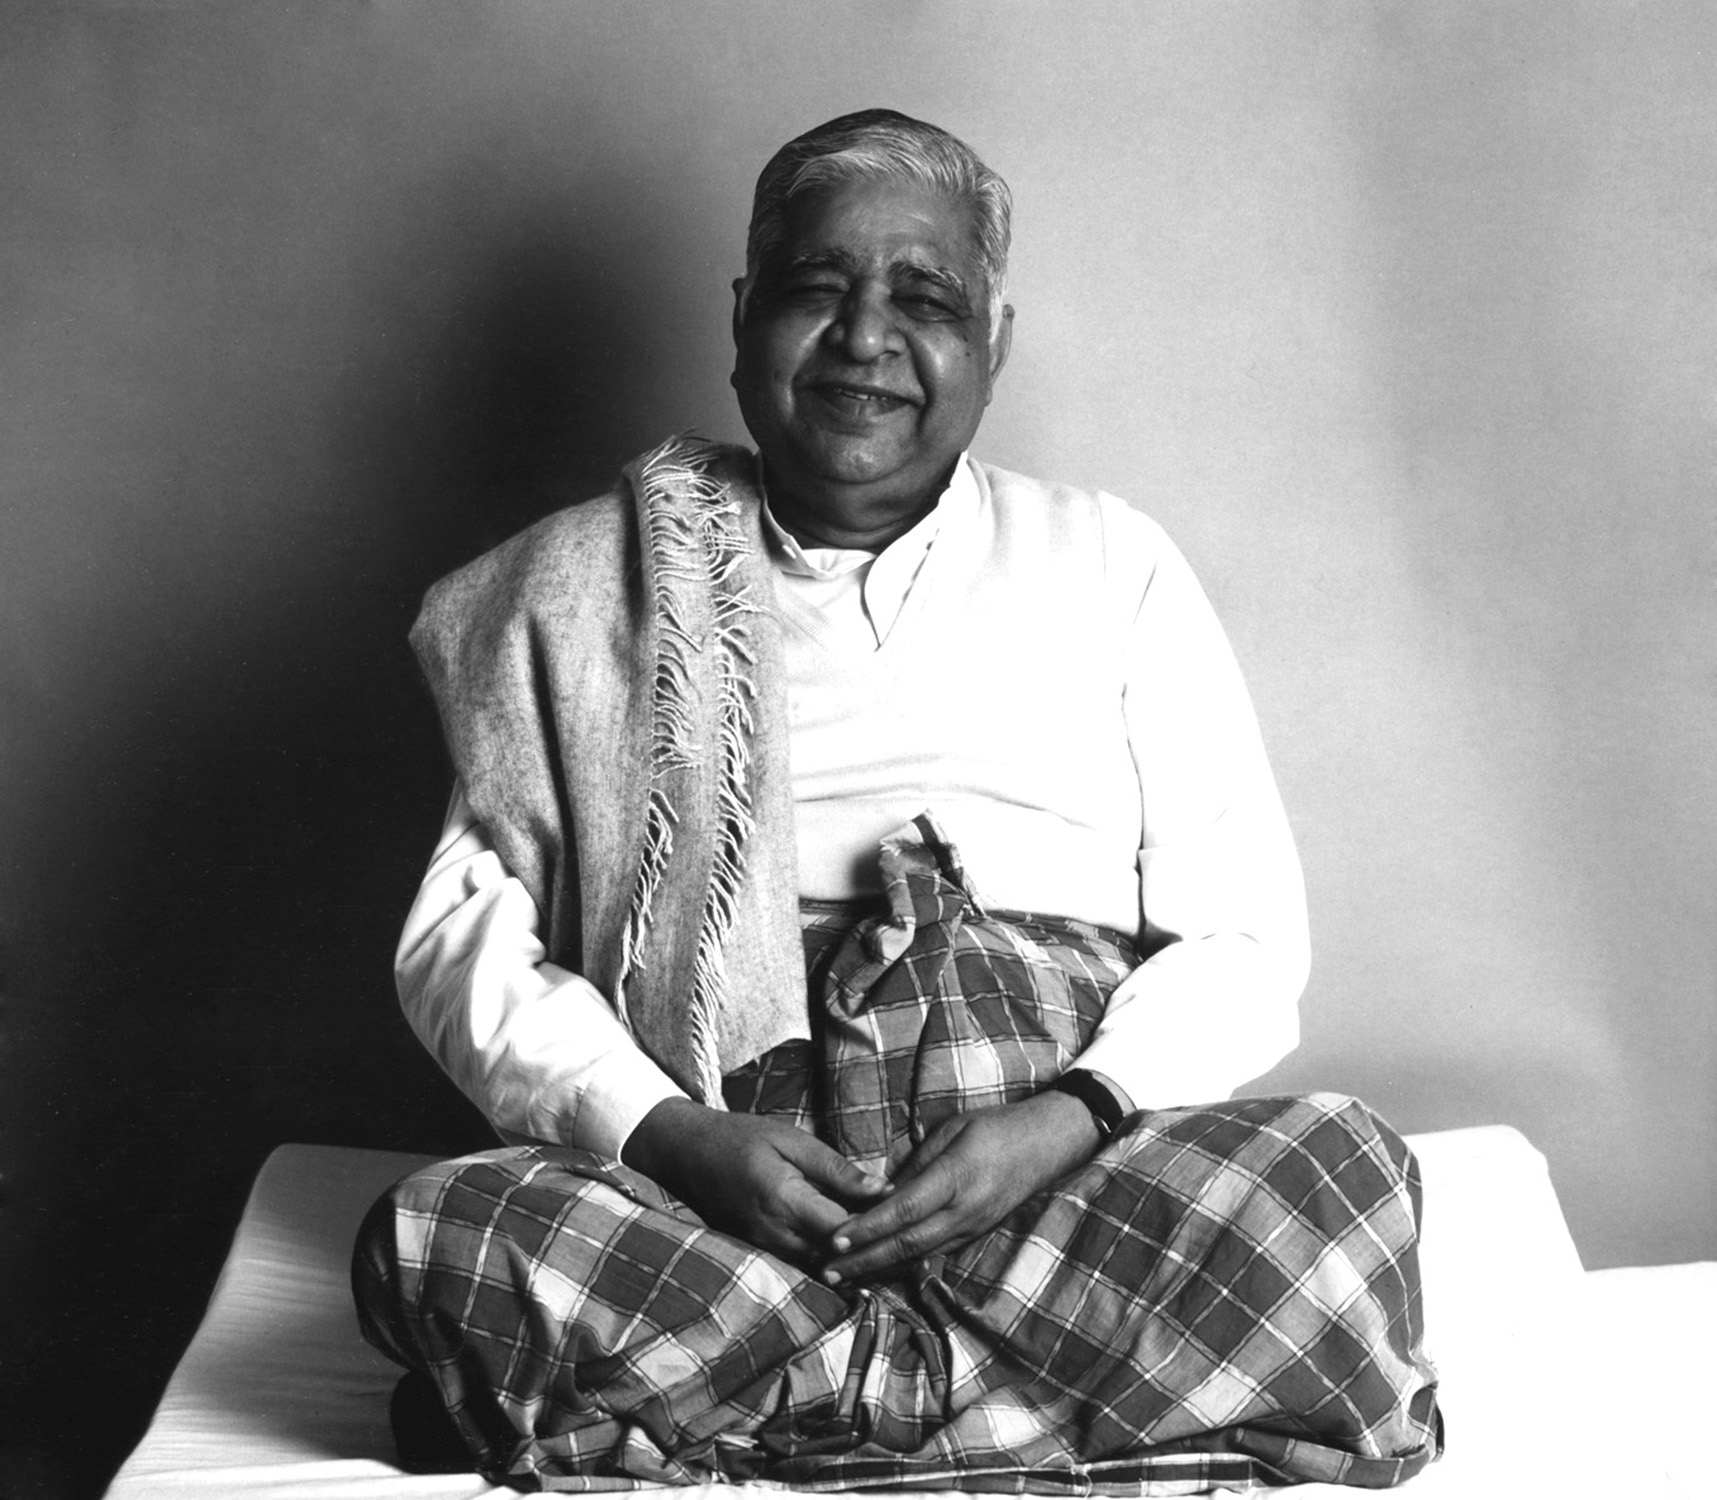 This is S.N. Goenka, the primary 'teacher' of the course, across the world. He has passed from this life, but his videos and audios still are the backbone of teaching the technique. He is so wonderful and you will no doubt fall in love with his storytelling and chanting as the course progresses.